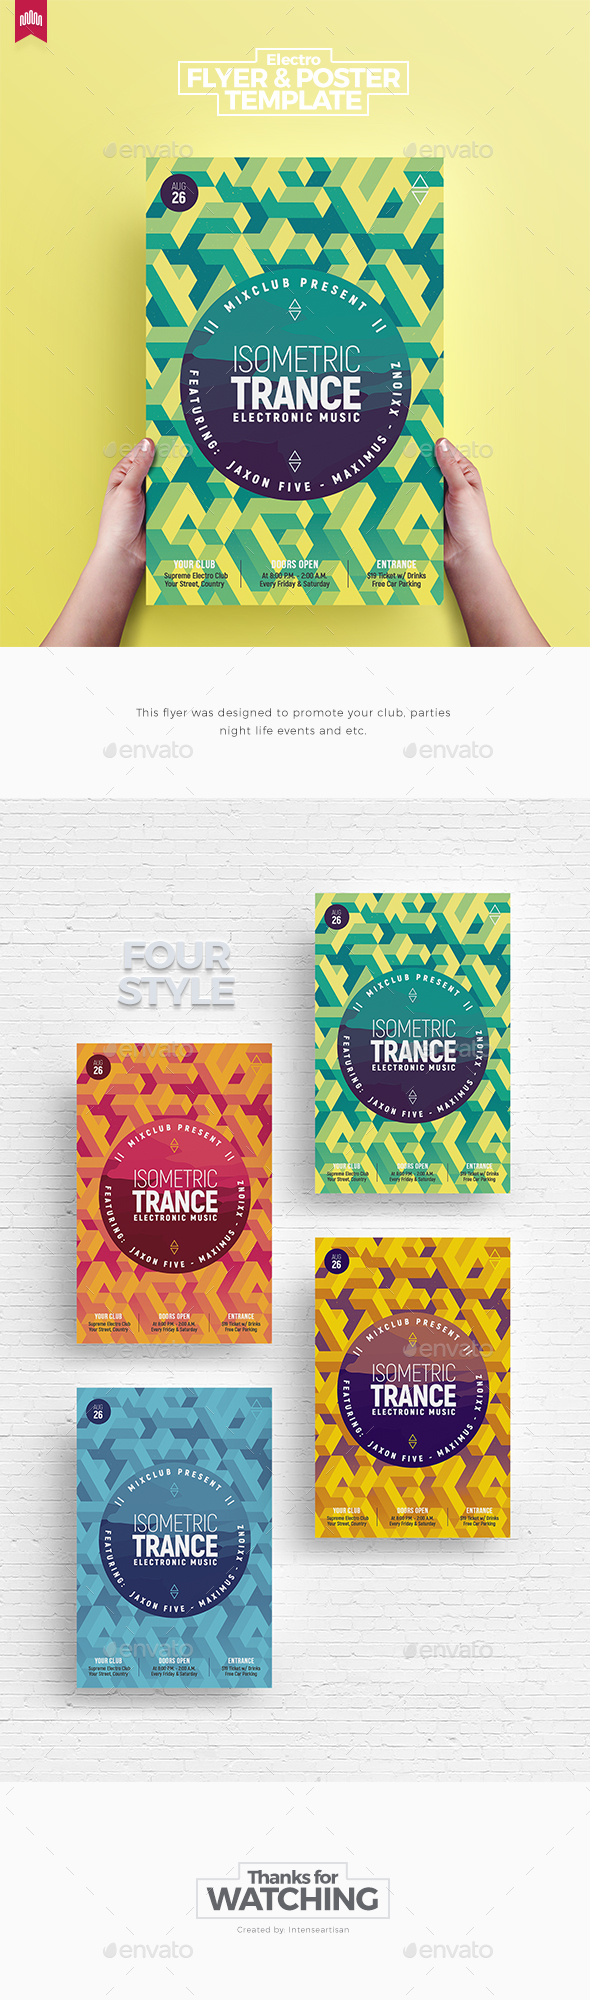 Isometric Trance - Flyer Template - Clubs & Parties Events